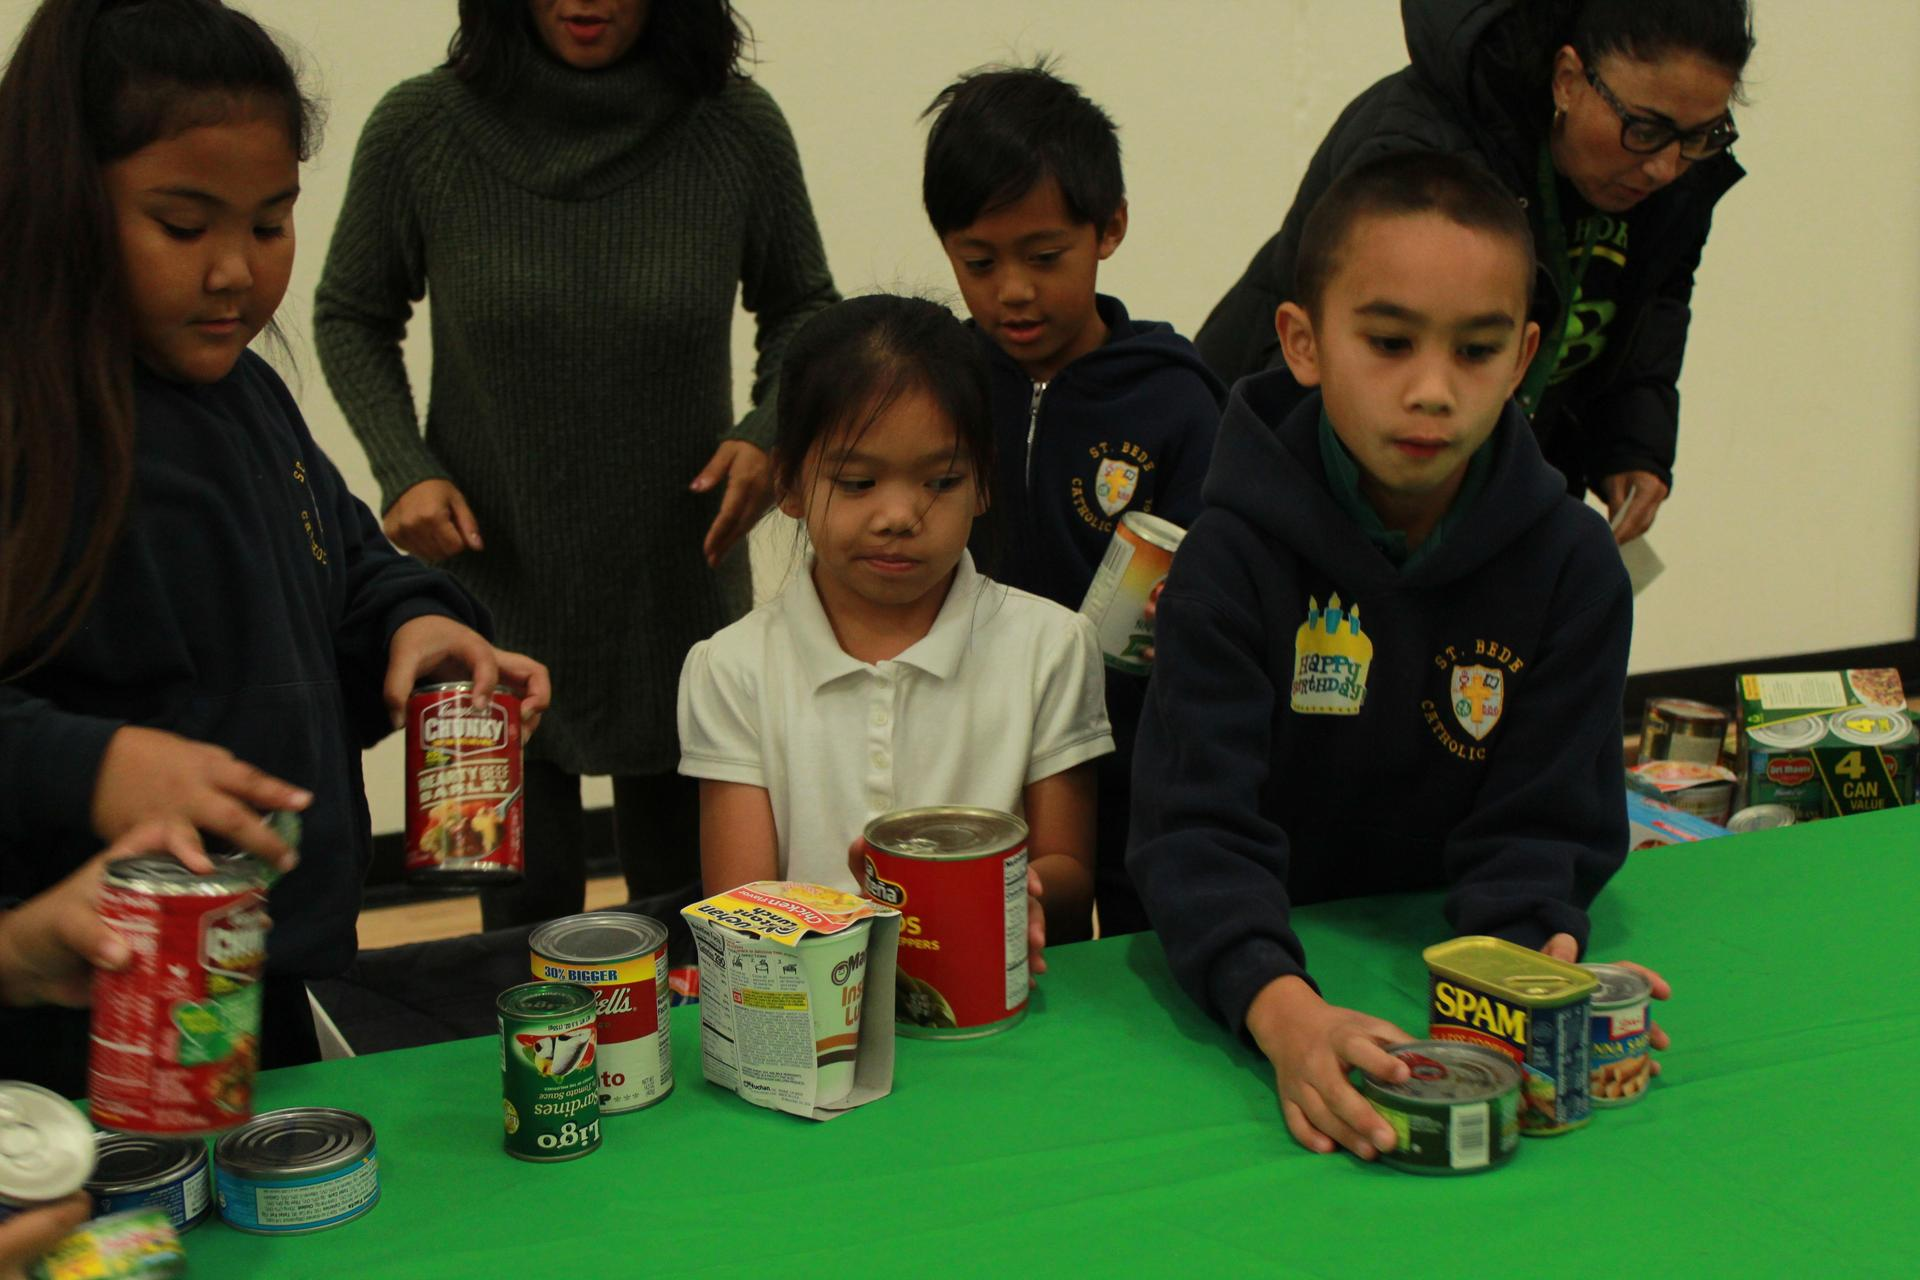 Giving to the food drive.